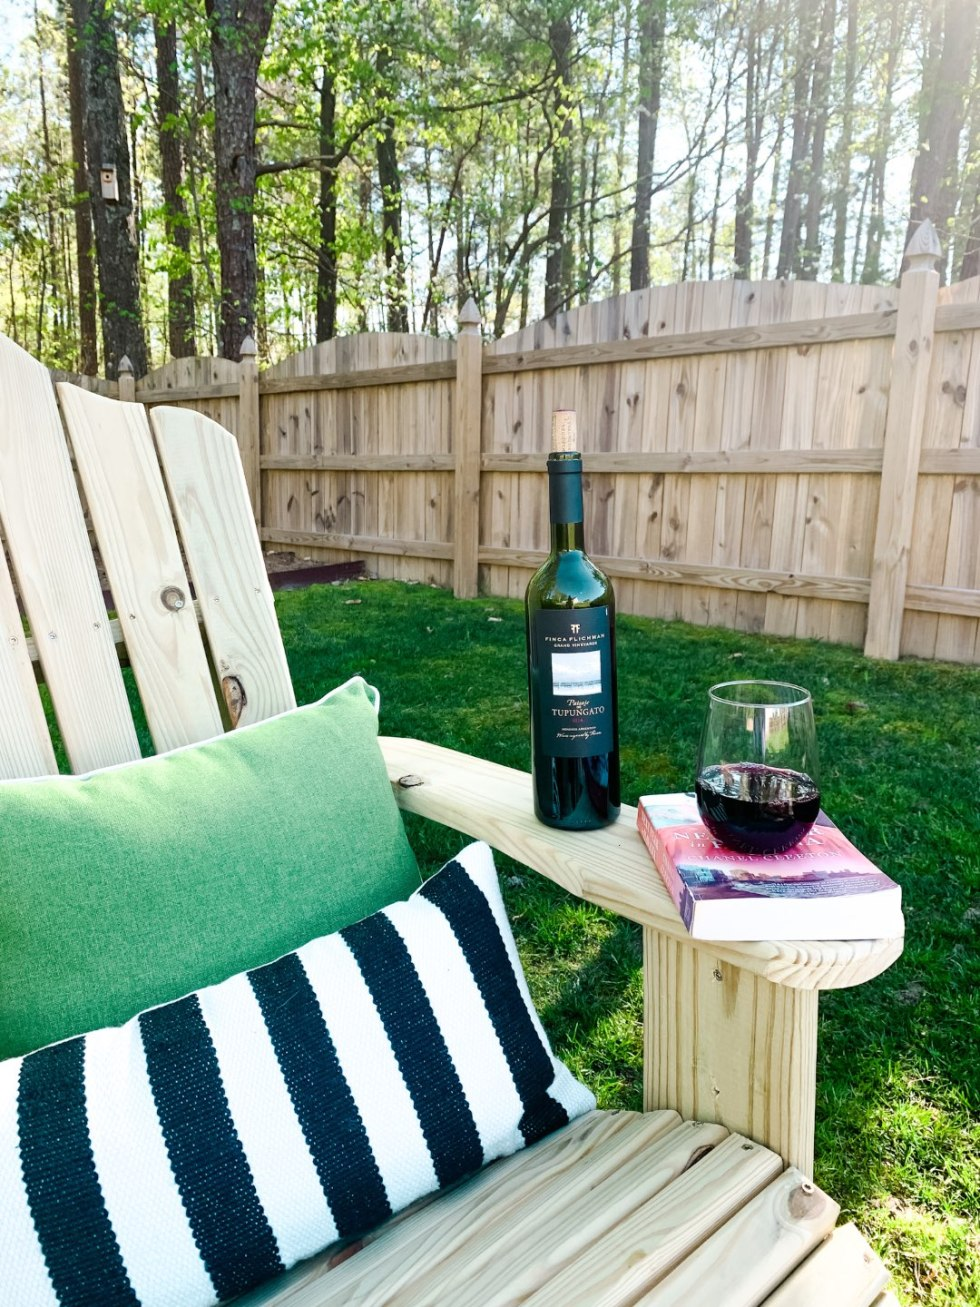 10 Backyard Picnic Essentials - I'm Fixin' To - @mbg0112 | Backyard Picnic by popular North Carolina lifestyle blog, I'm Fixin' To: image of a wooden adirondack chair with a black and white stripe pillow and a green pillow and a book and a bottle of red wine resting on the arm.